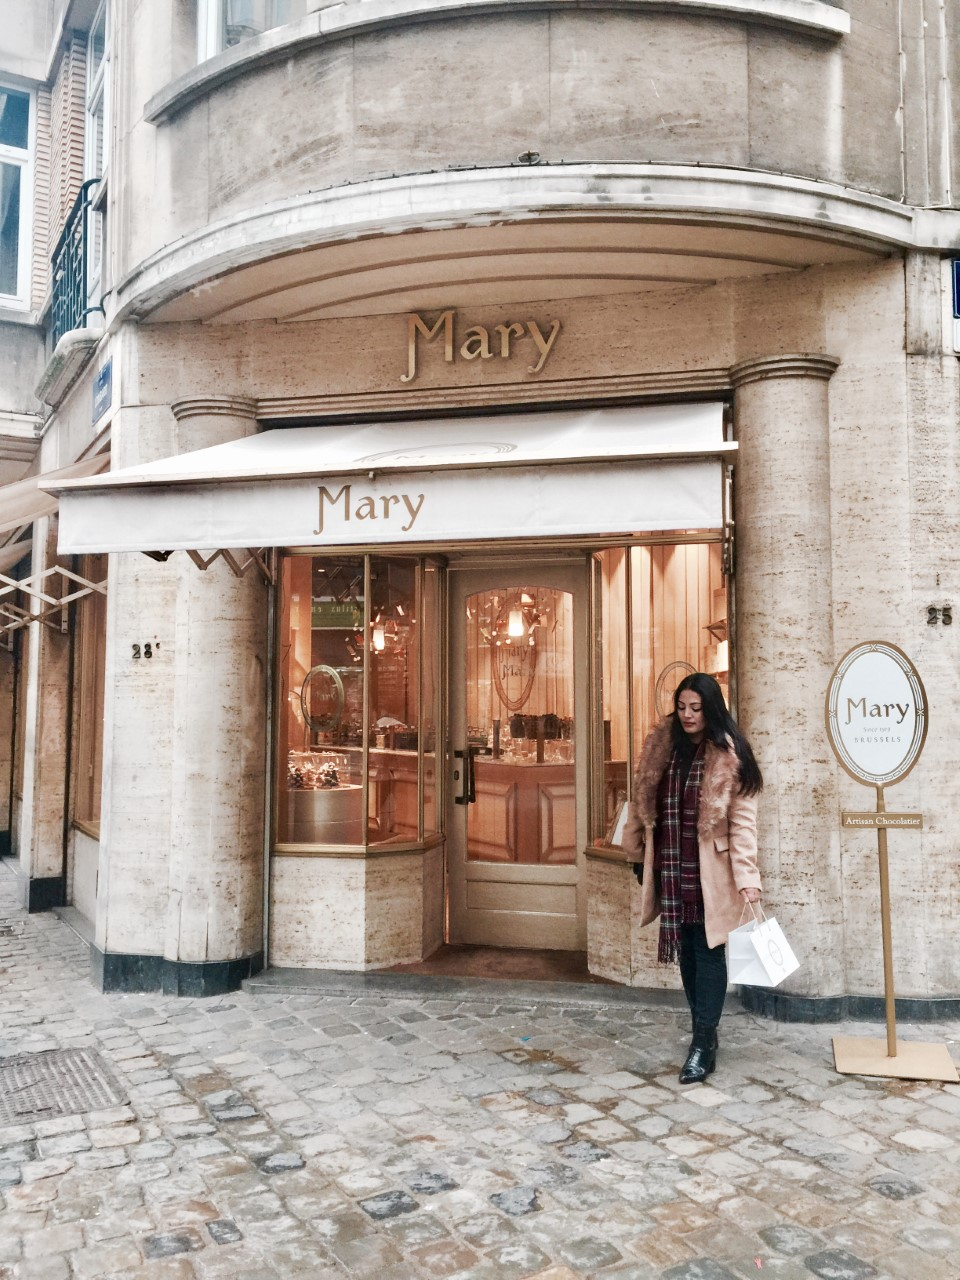 MARY'S CHOCOLATIER - Maryis the grande dame of Belgian chocolate.The 92-year-old chocolatier is a favorite of the Belgian royal family, filled with rows of caramel, marzipan,chocolate mousse, ganache and cream-filled pralines. It easy became my favourite too!